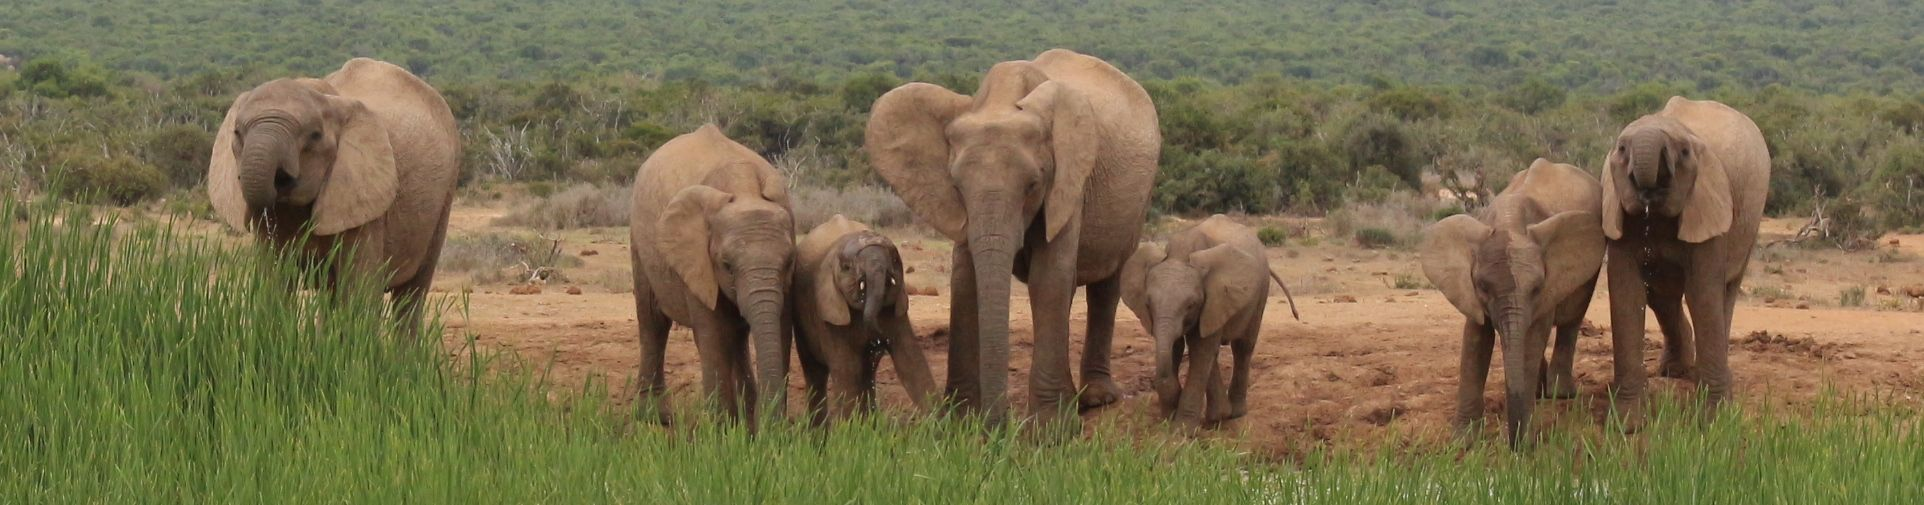 A herd of Elephants in Addo Elephant National Park